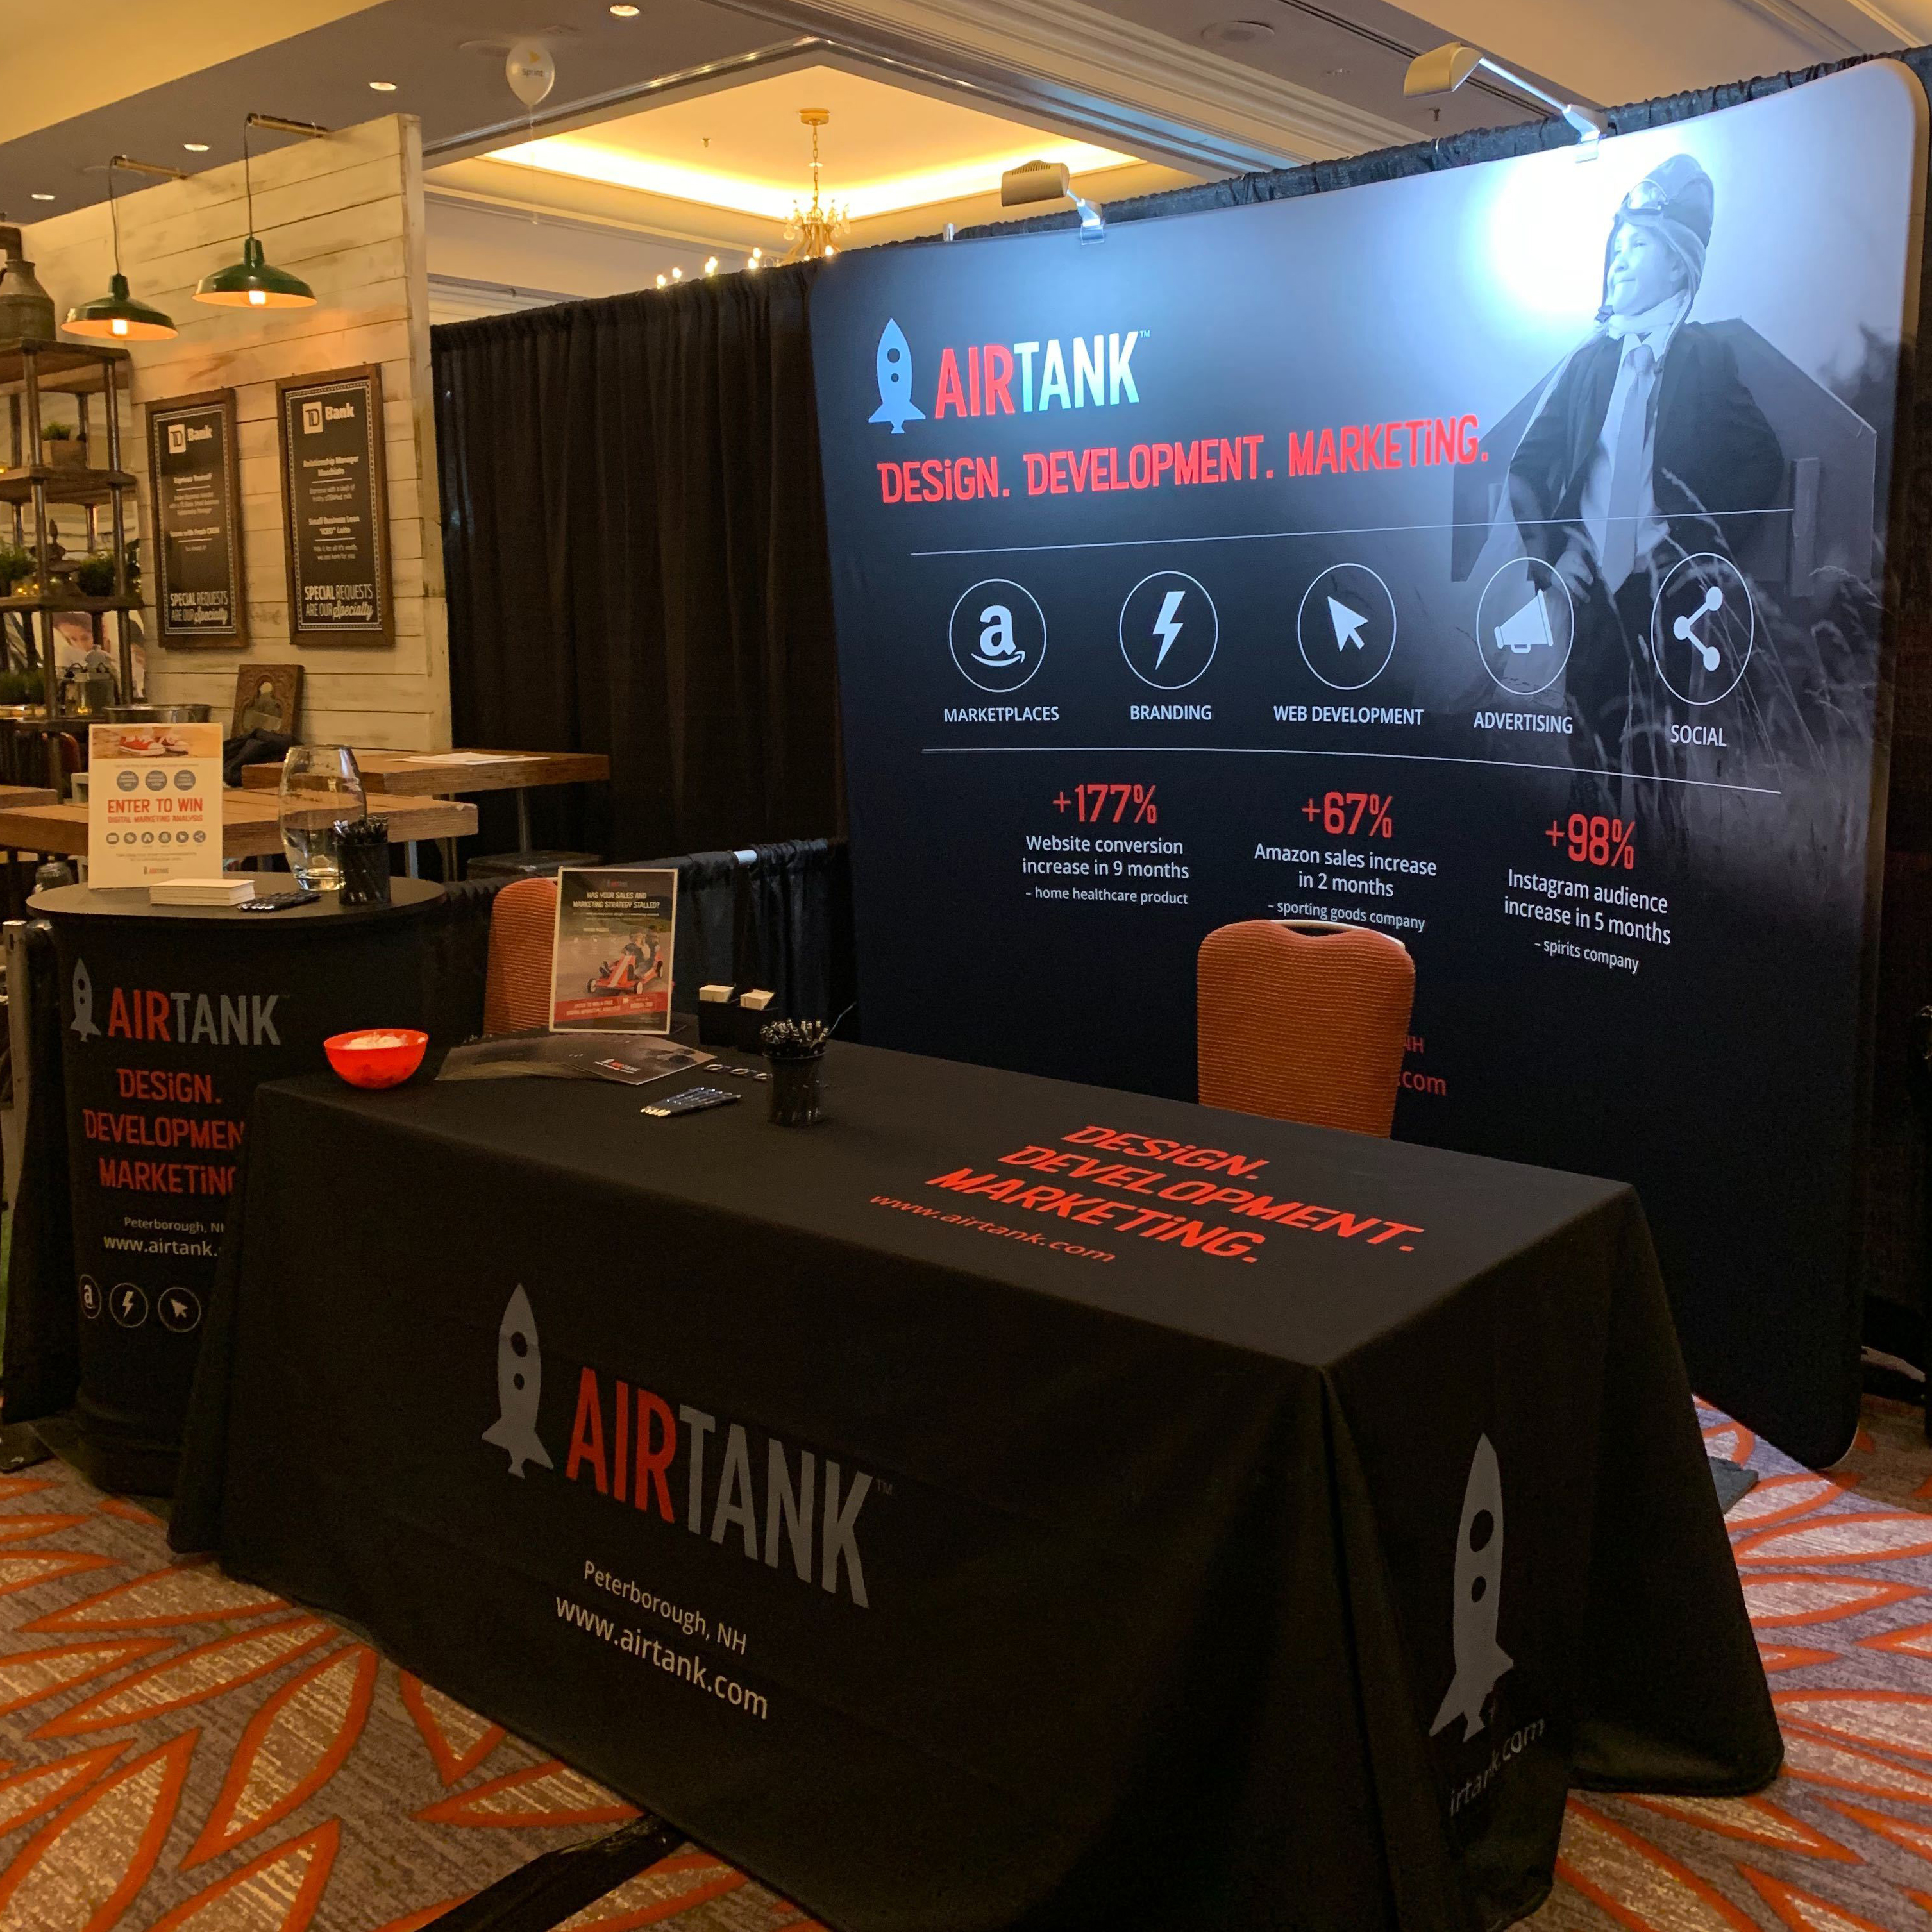 Airtank booth at Small Business Expo in Boston